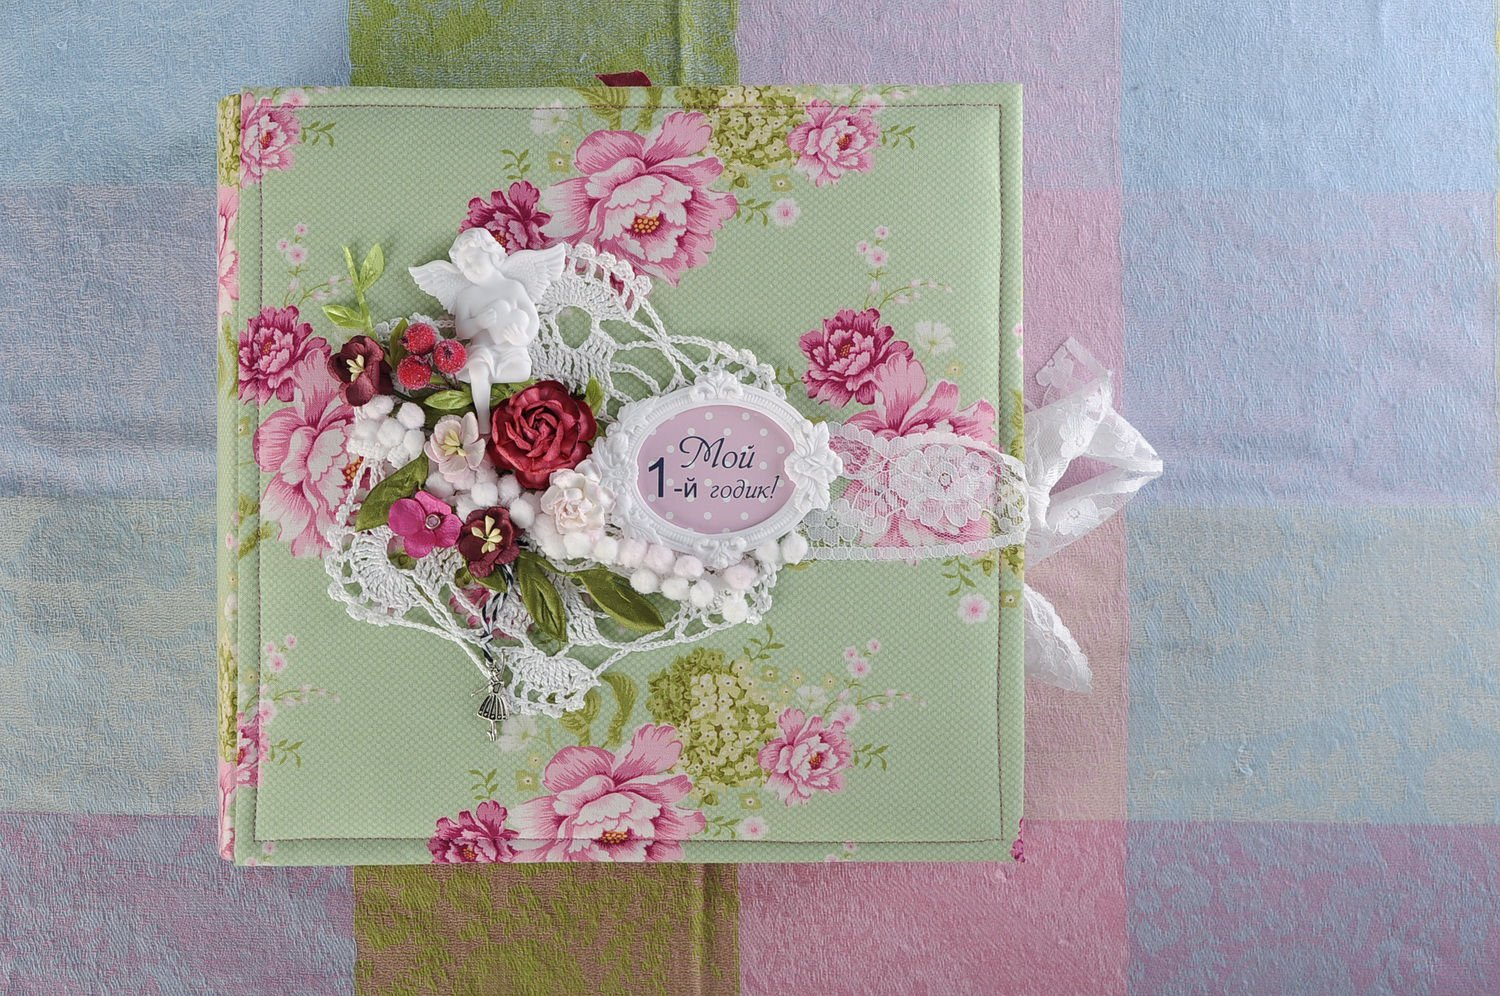 Handmade Beautiful Scrapbooking Photo Album for the One-year-old Girl Gift Ideas